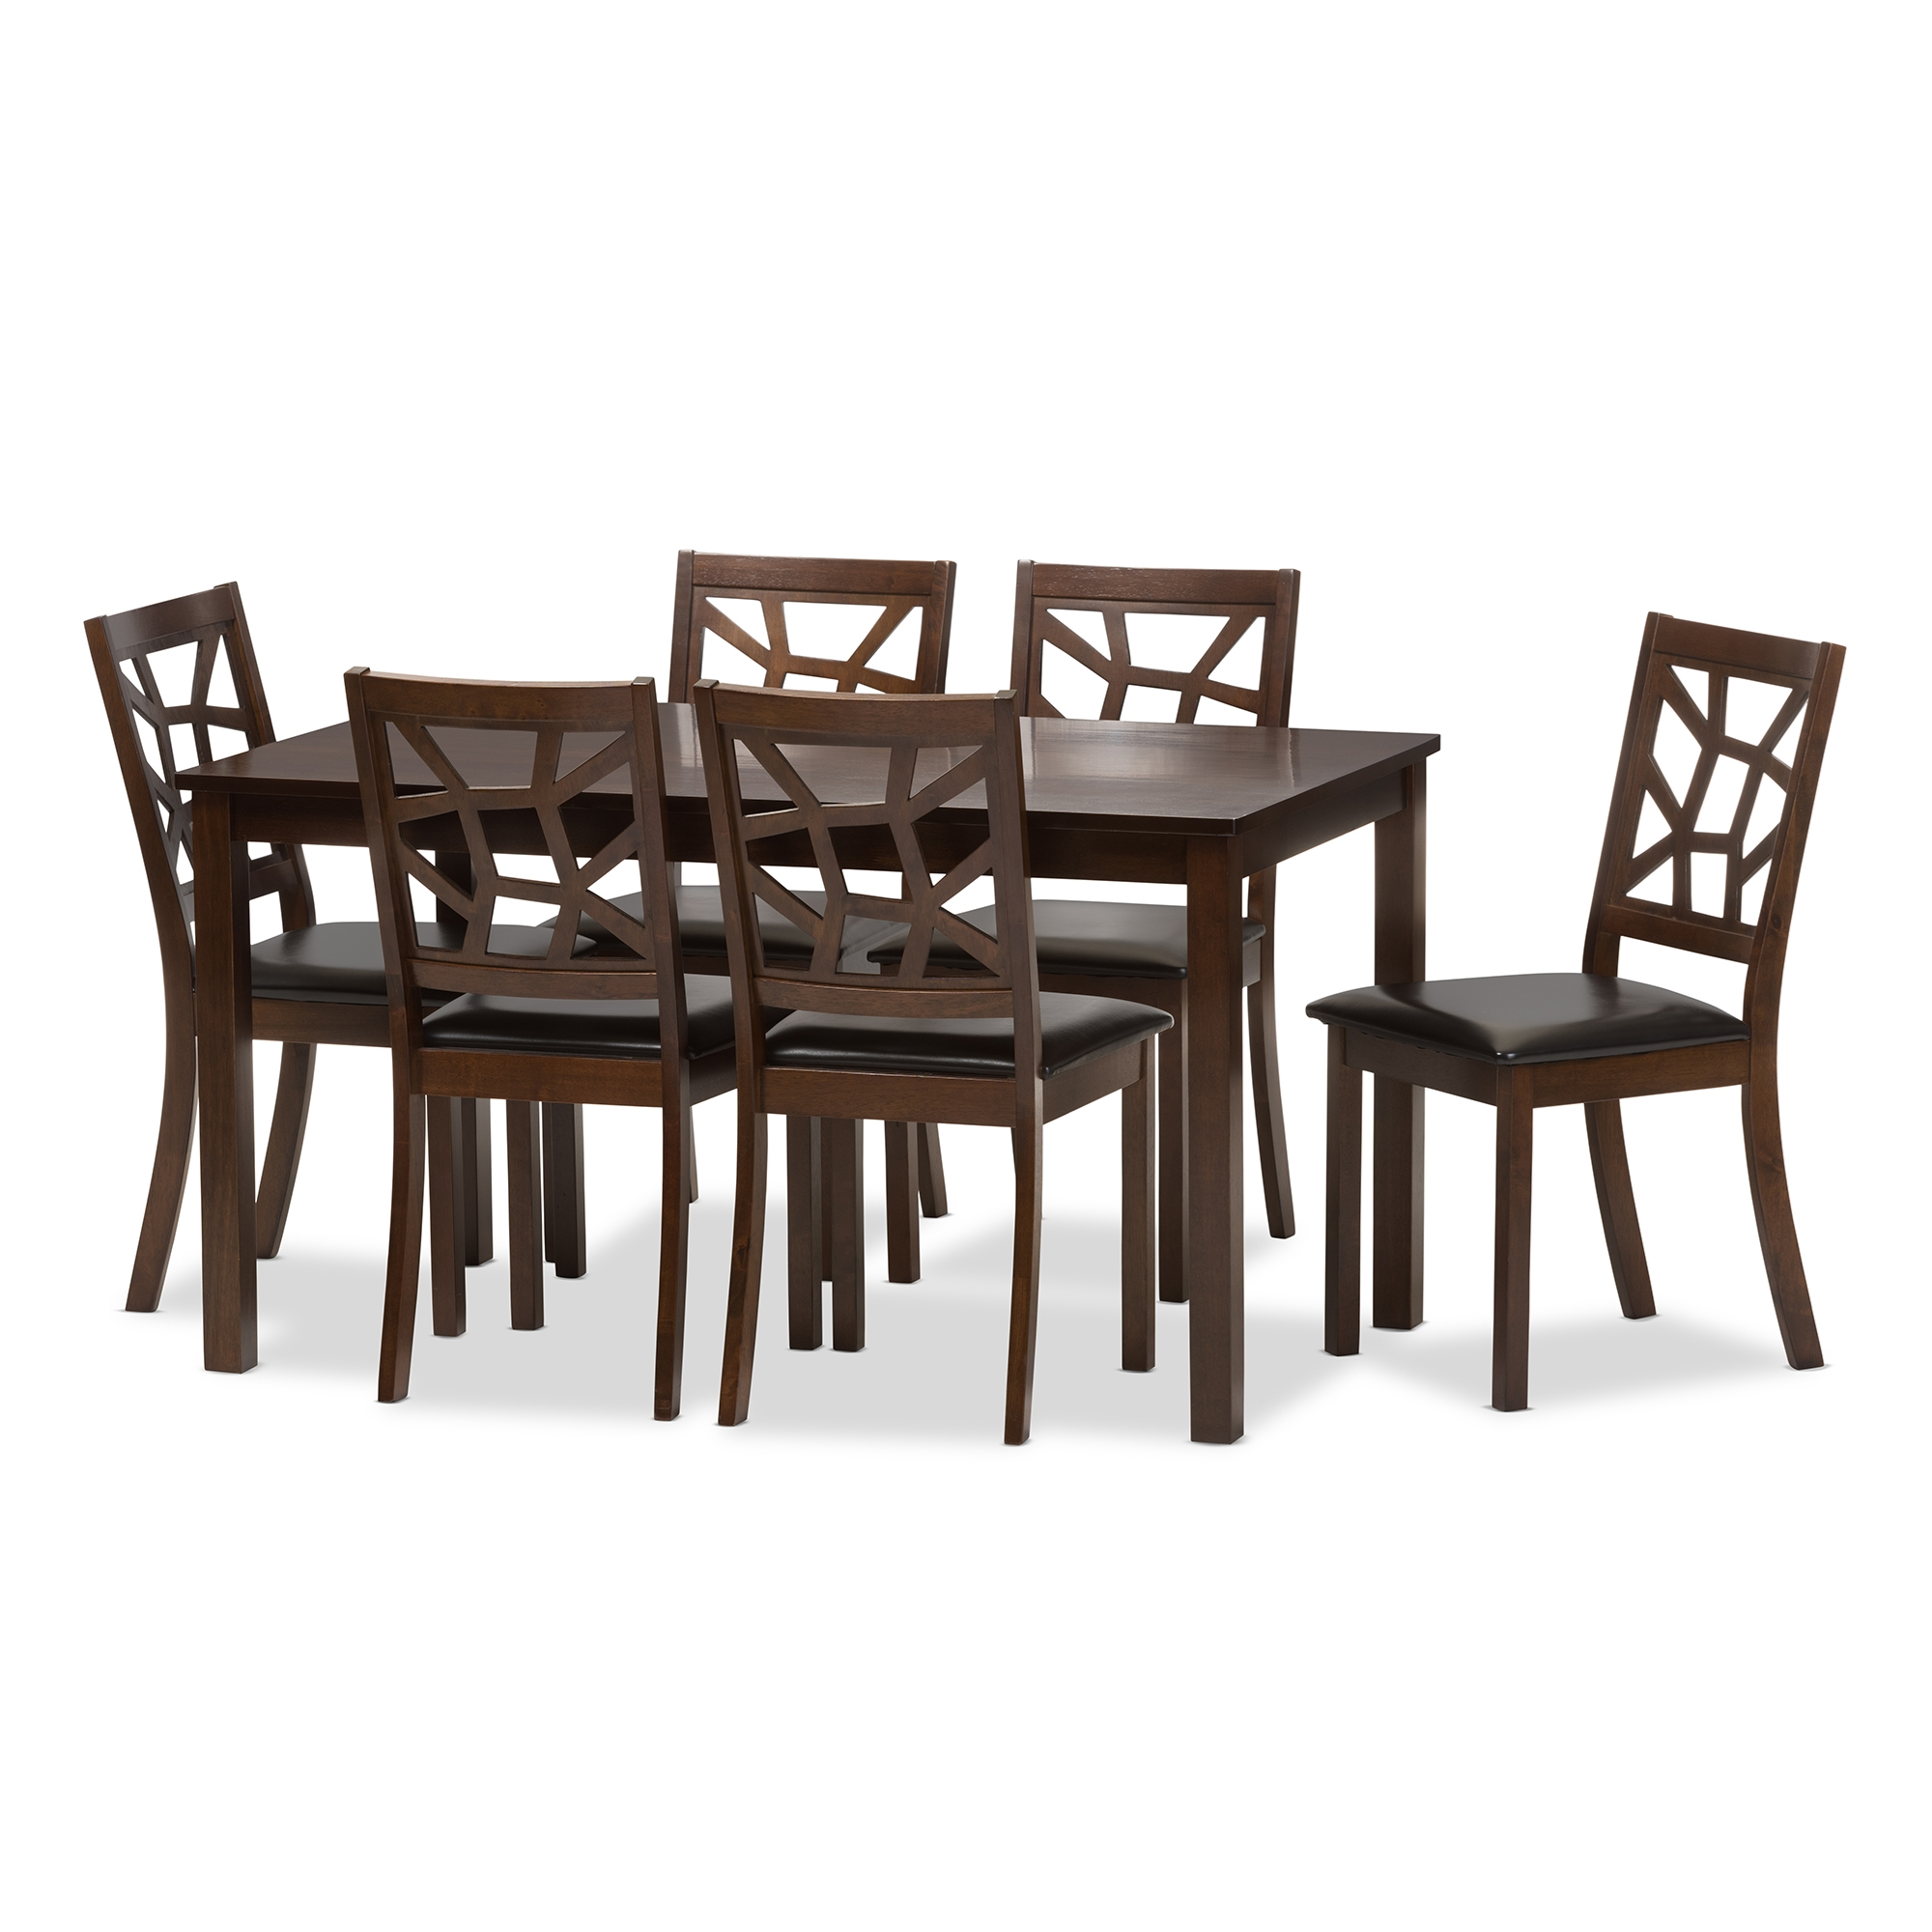 Baxton Studio Mozaika Wood And Leather Contemporary 7 Piece Dining Set    BSOPCH305SQ (S3 ...